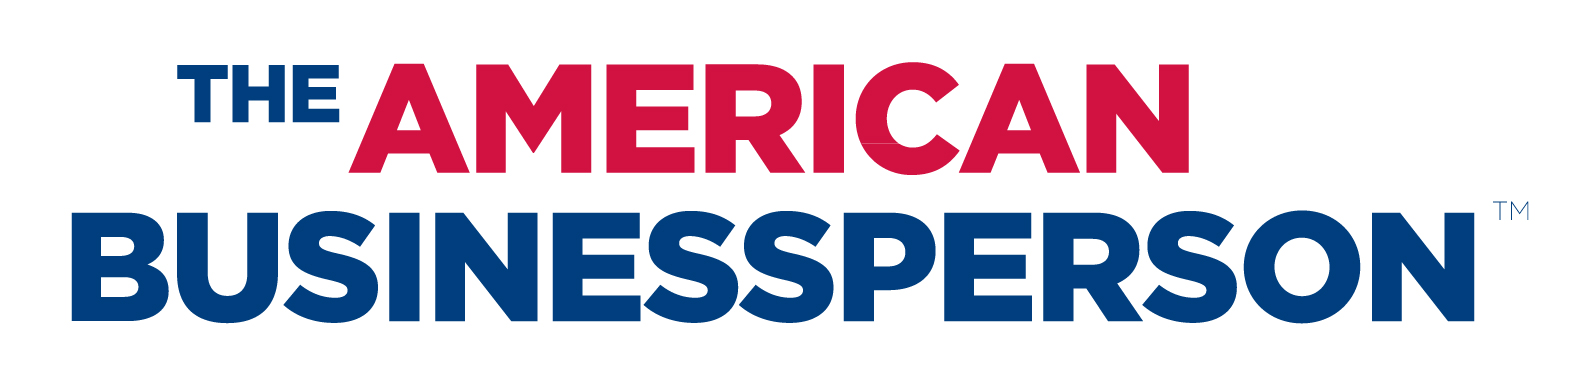 The American Businessperson Logo